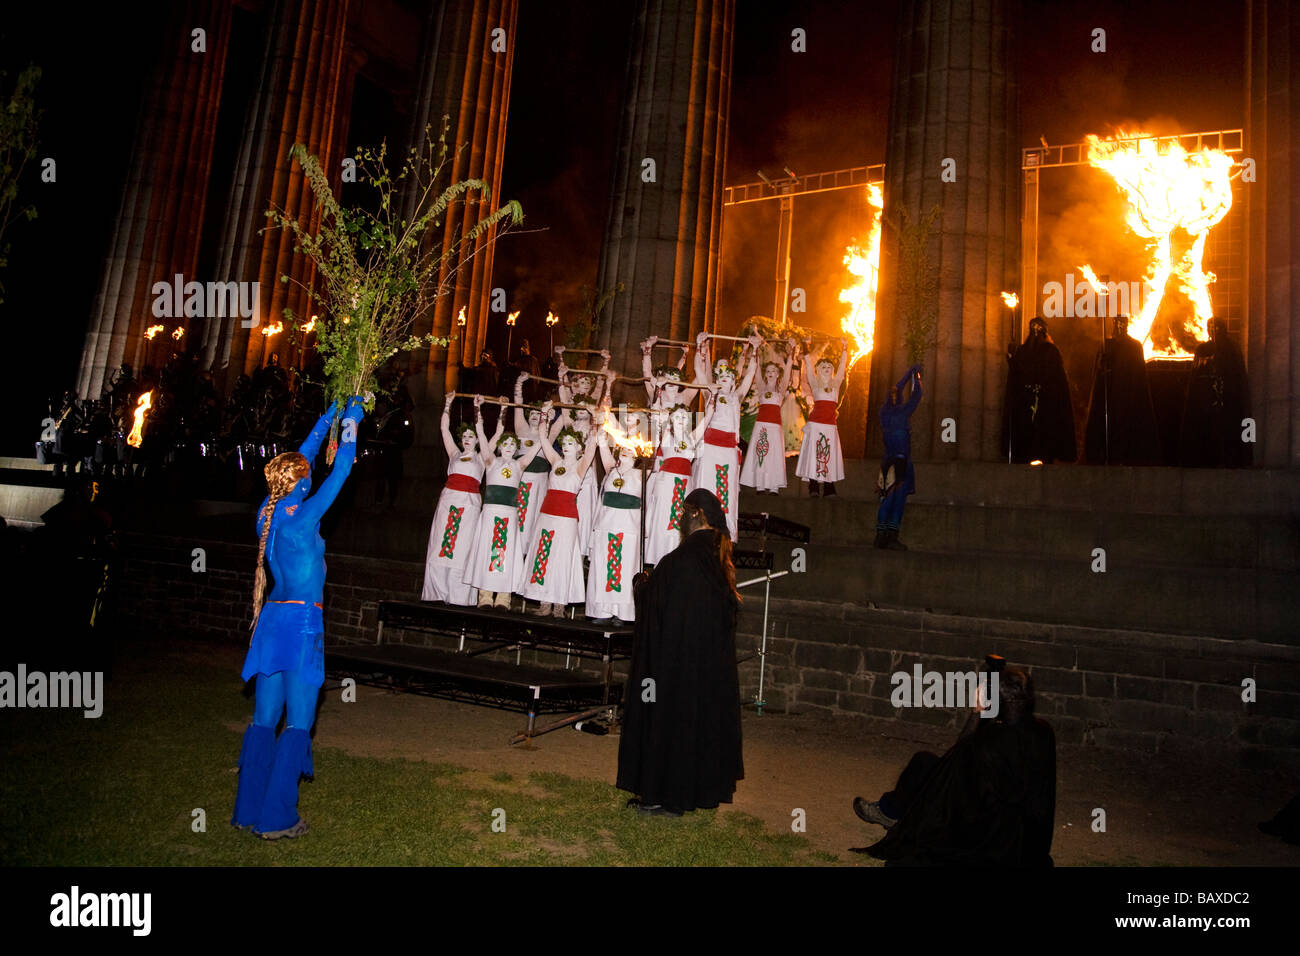 The Beltane Fire Festival on Calton Hill an ancient Celtic and Pagan festival, City of Edinburgh, Scotland. - Stock Image